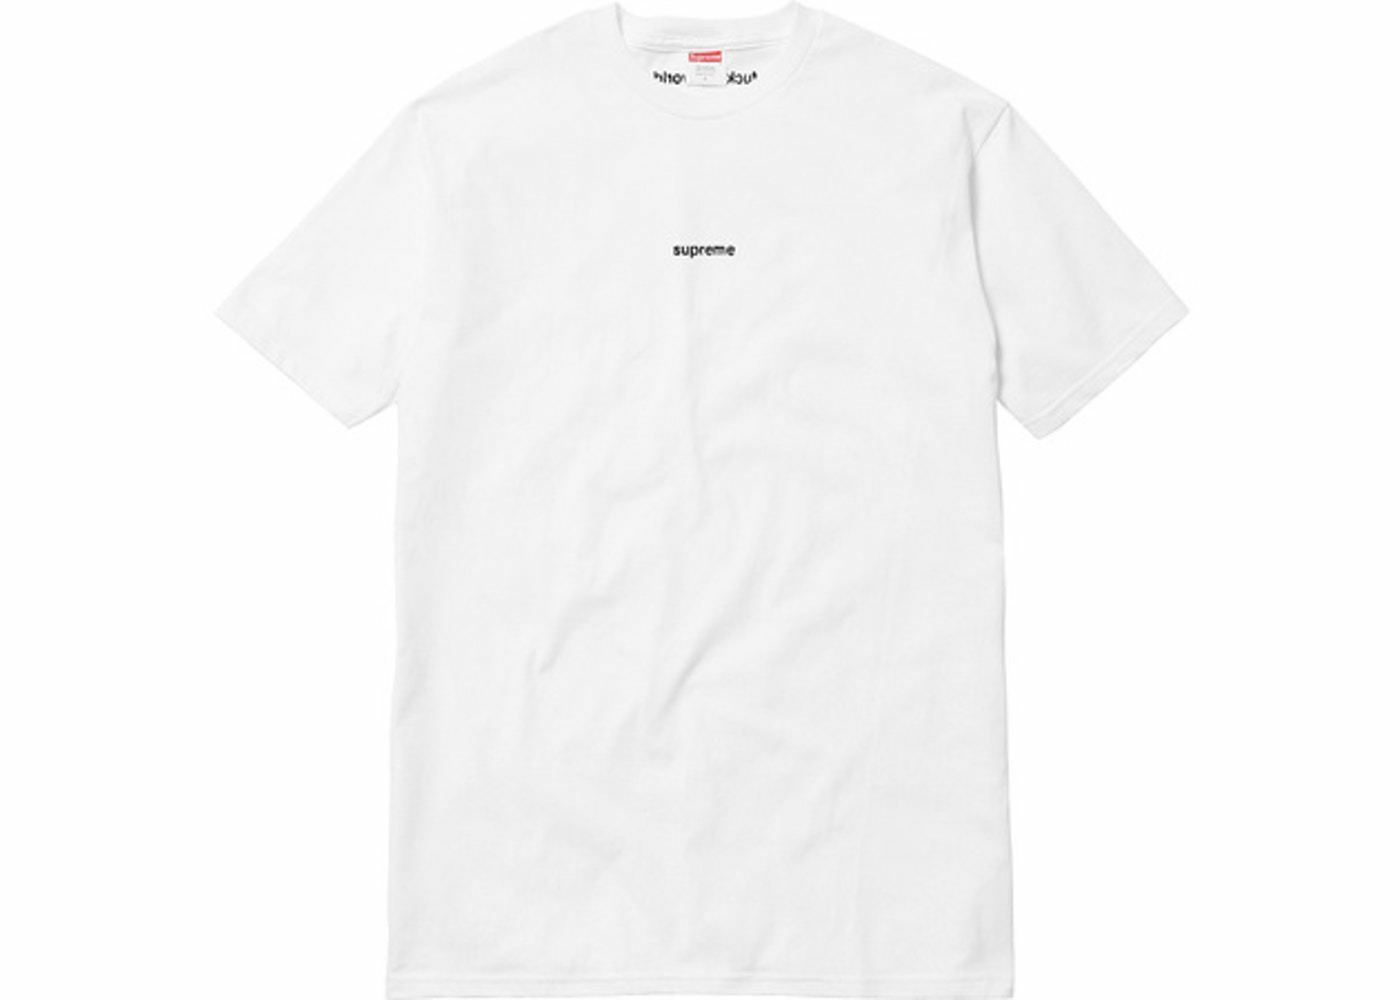 New Supreme FTW Tee White F The World SS18 Large L Authentic FTW